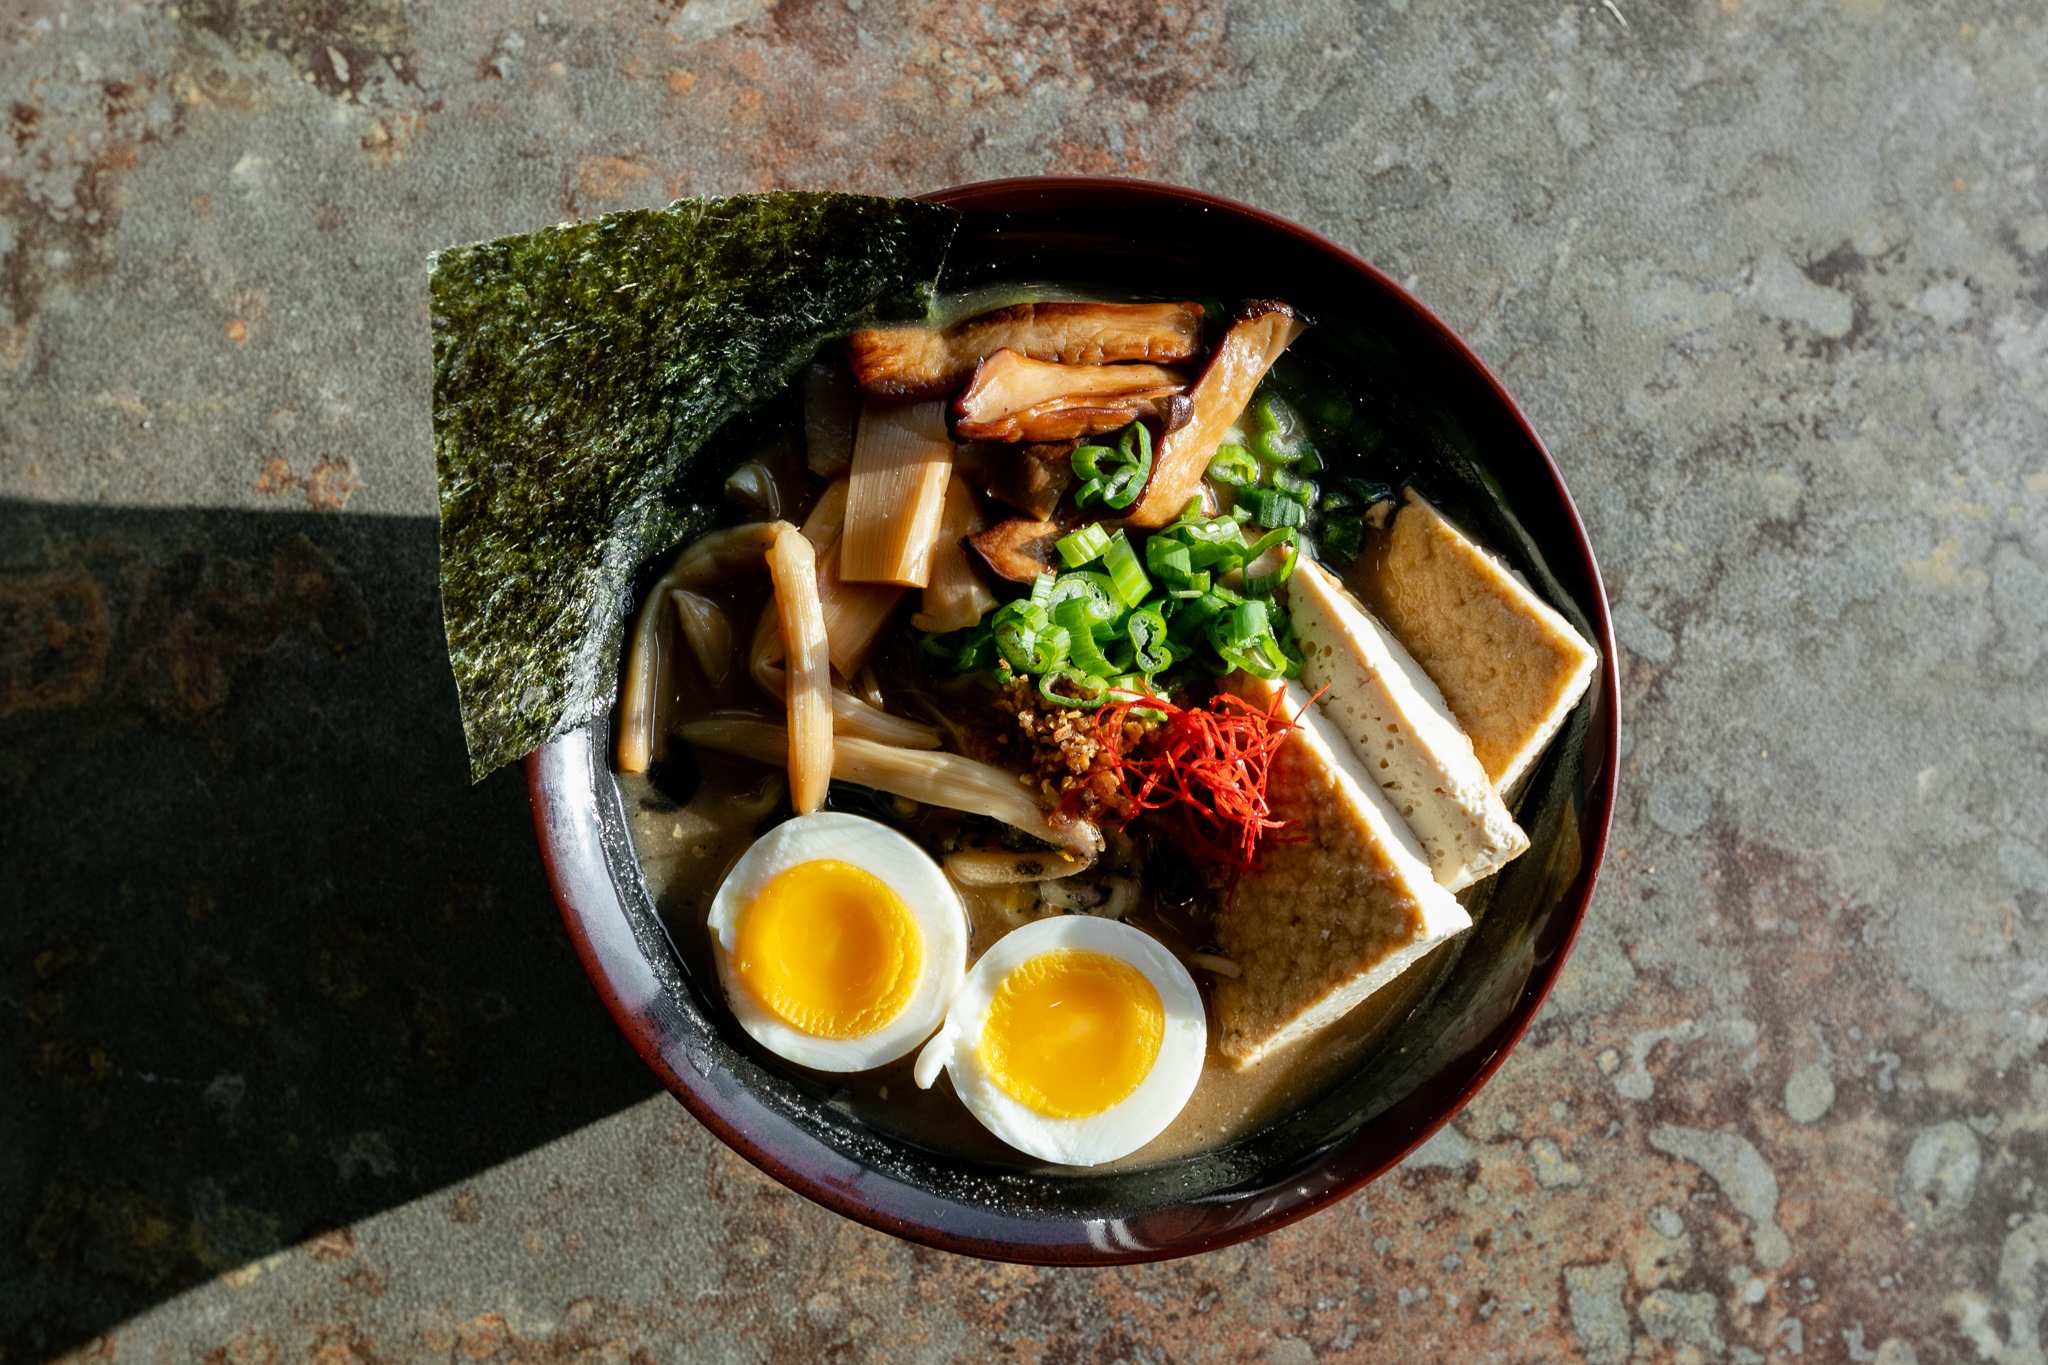 A vegetarian udon noodle bowl with tofu, seaweed, mushrooms, soft boiled eggs, and green onion